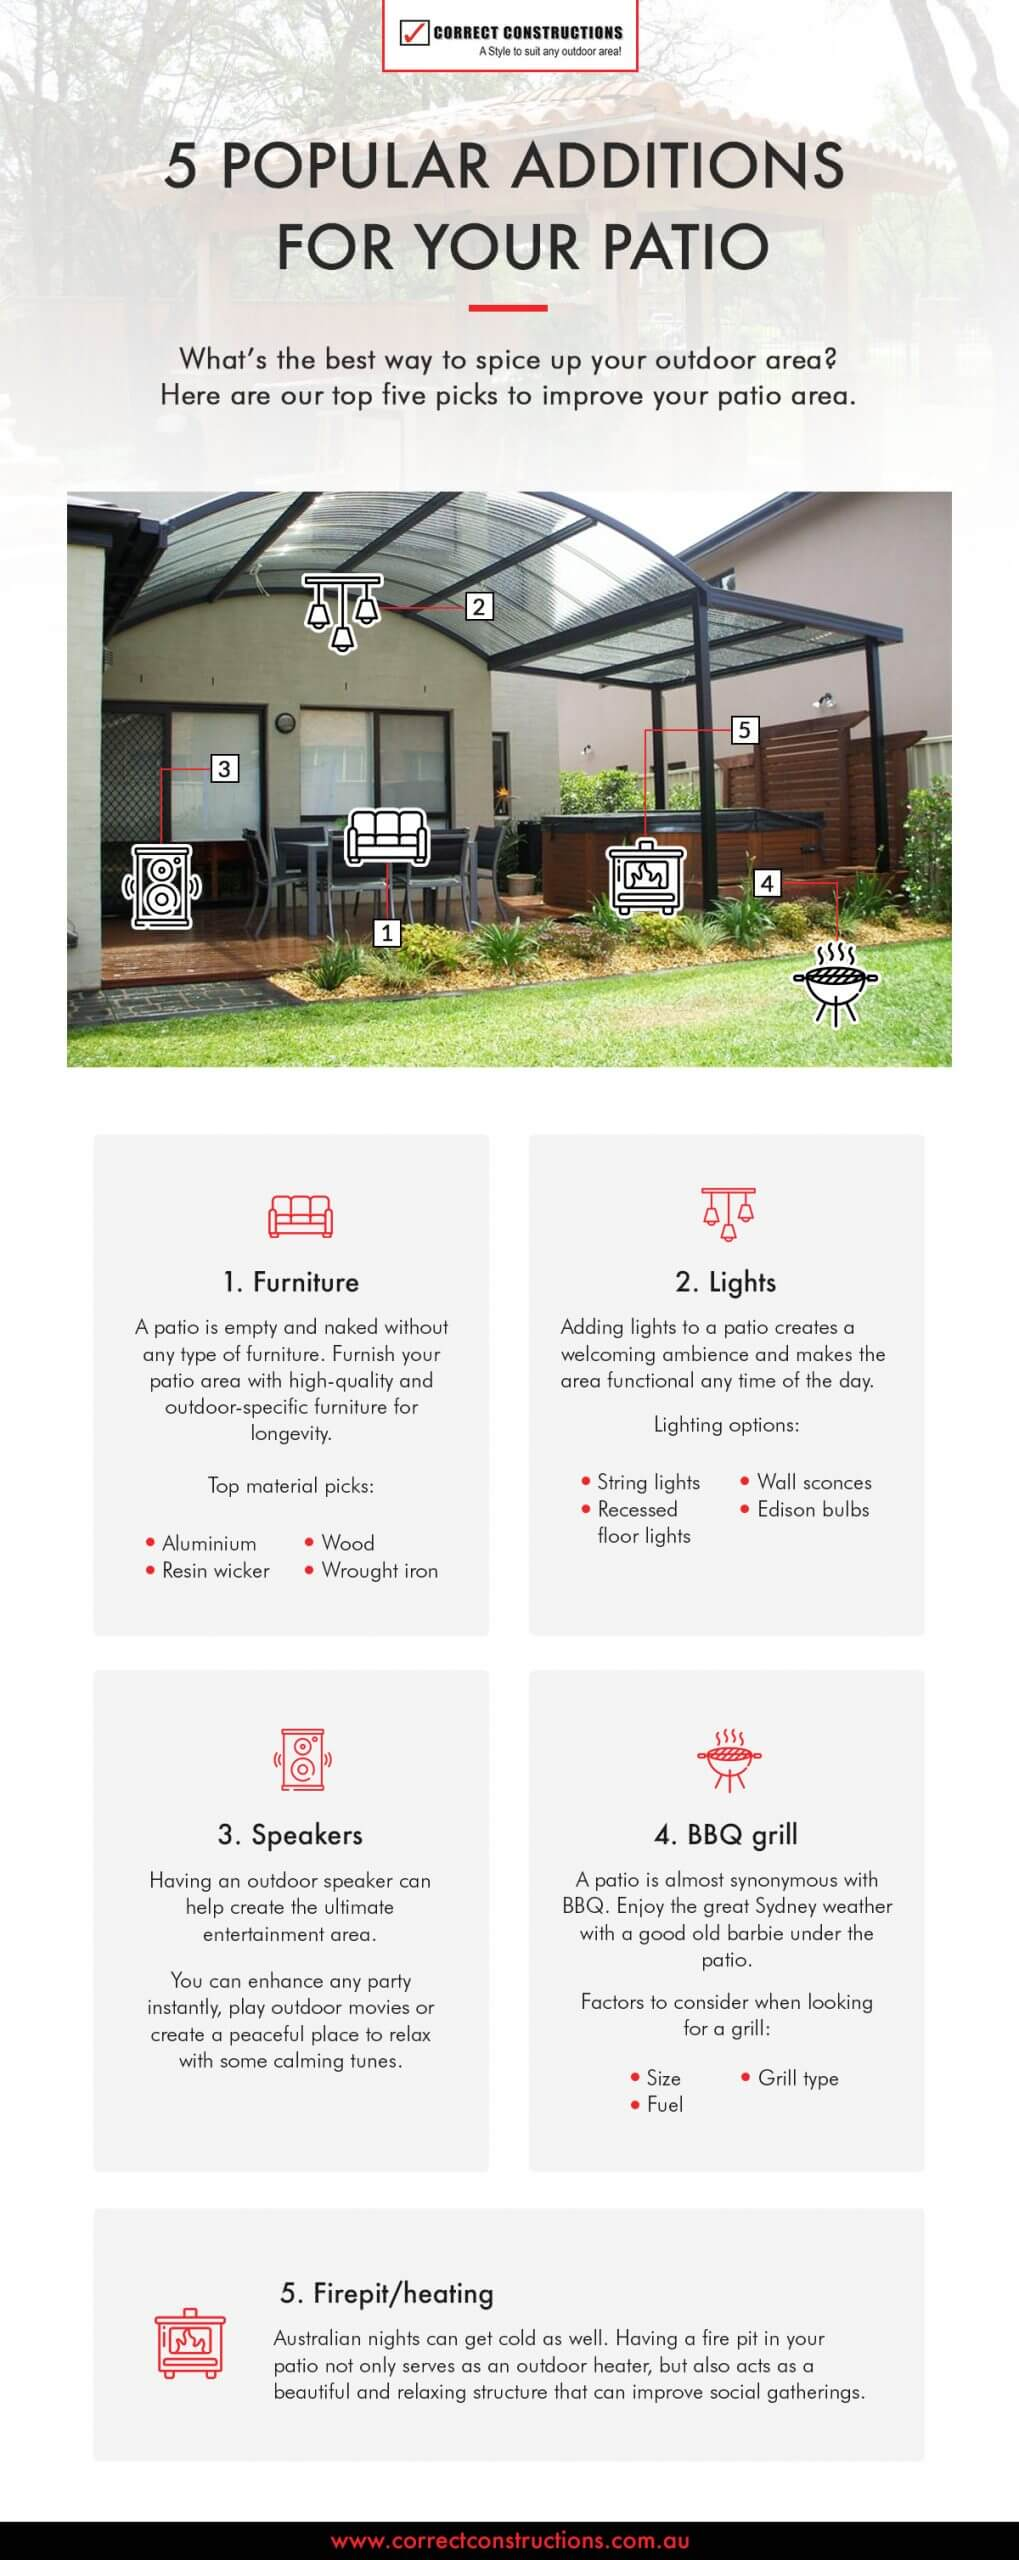 5 additions for your patio infographic